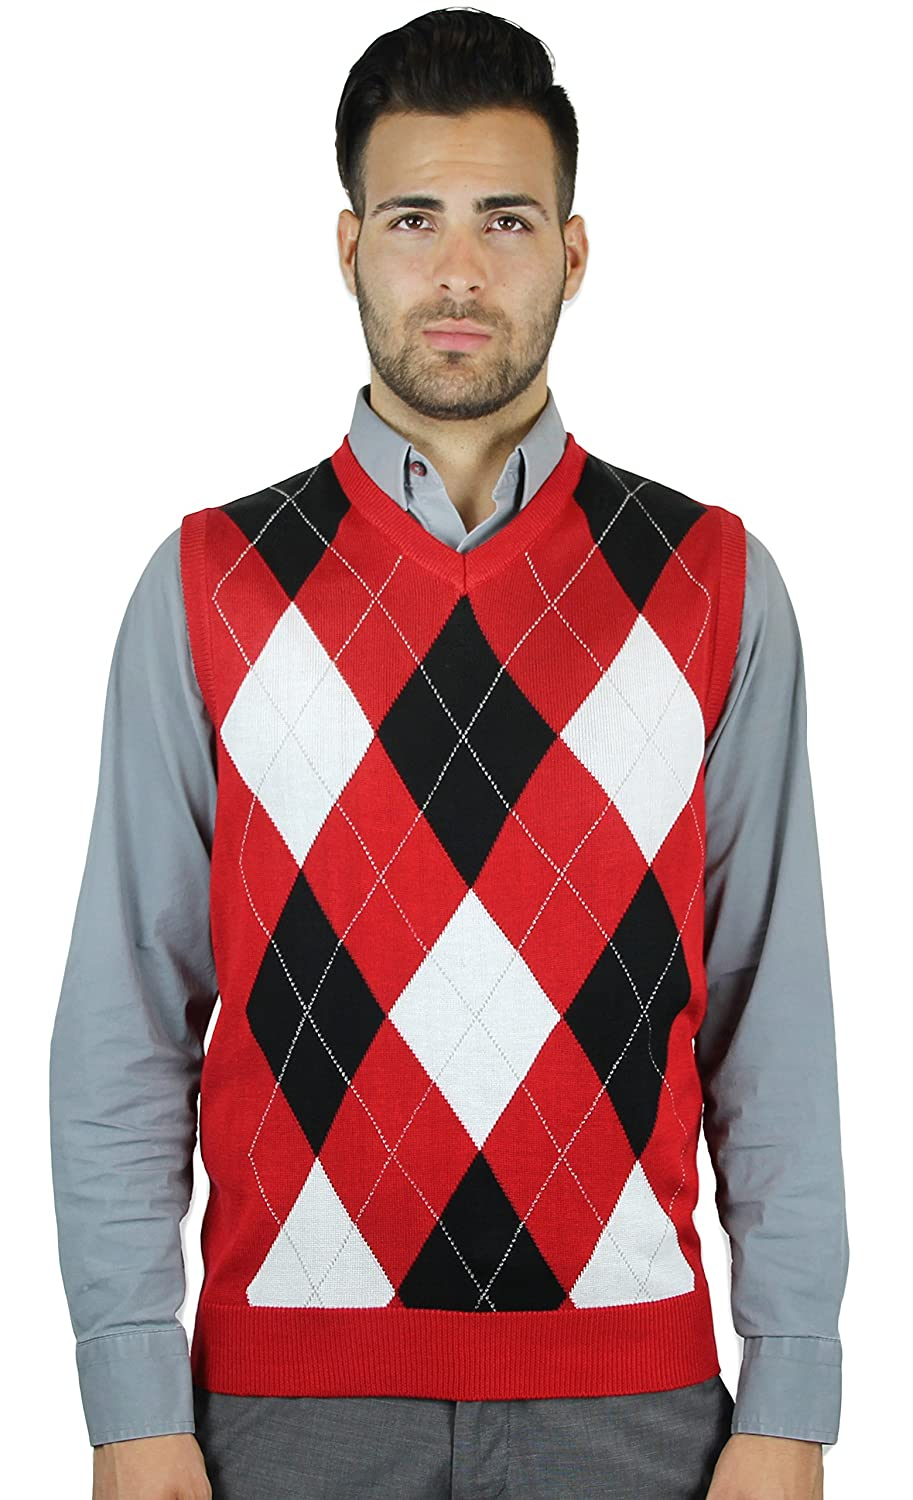 Blue Ocean Argyle Sweater Vest at Amazon Men's Clothing store: